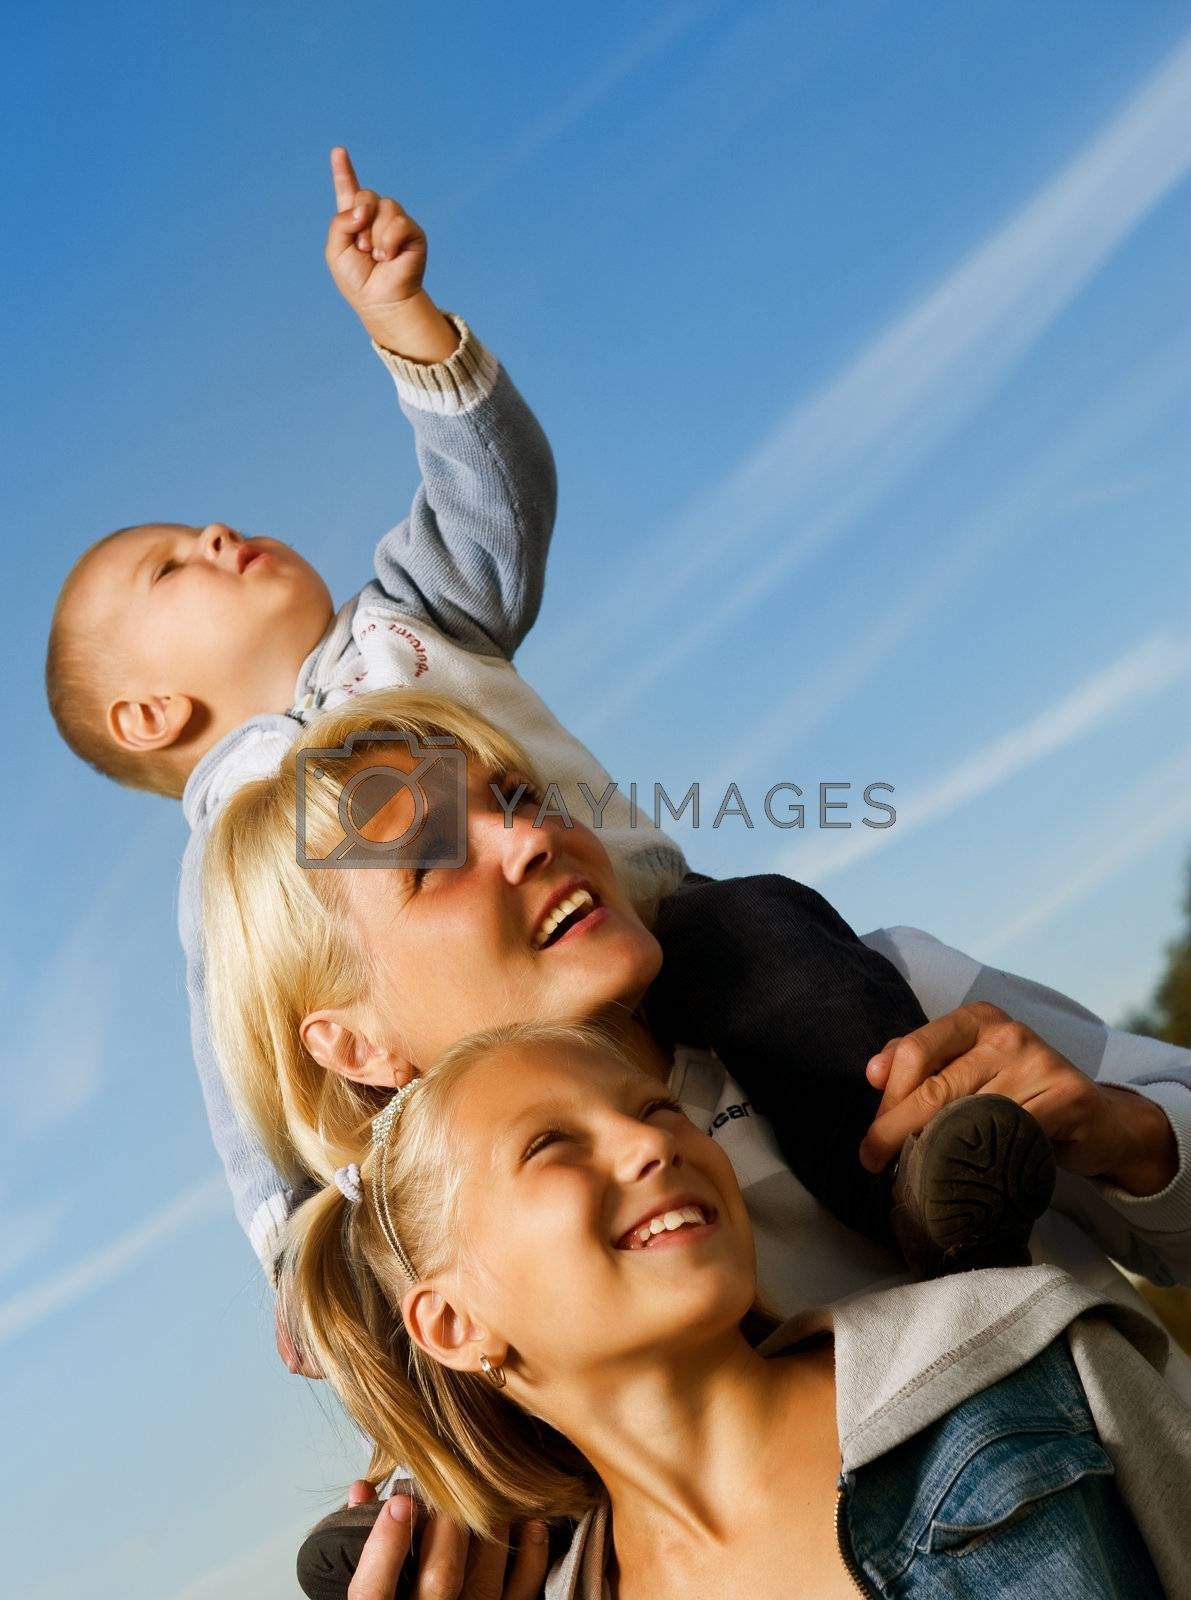 Healthy Family Outdoor. Happy Mother With Kids Over Blue Sky by SubbotinaA